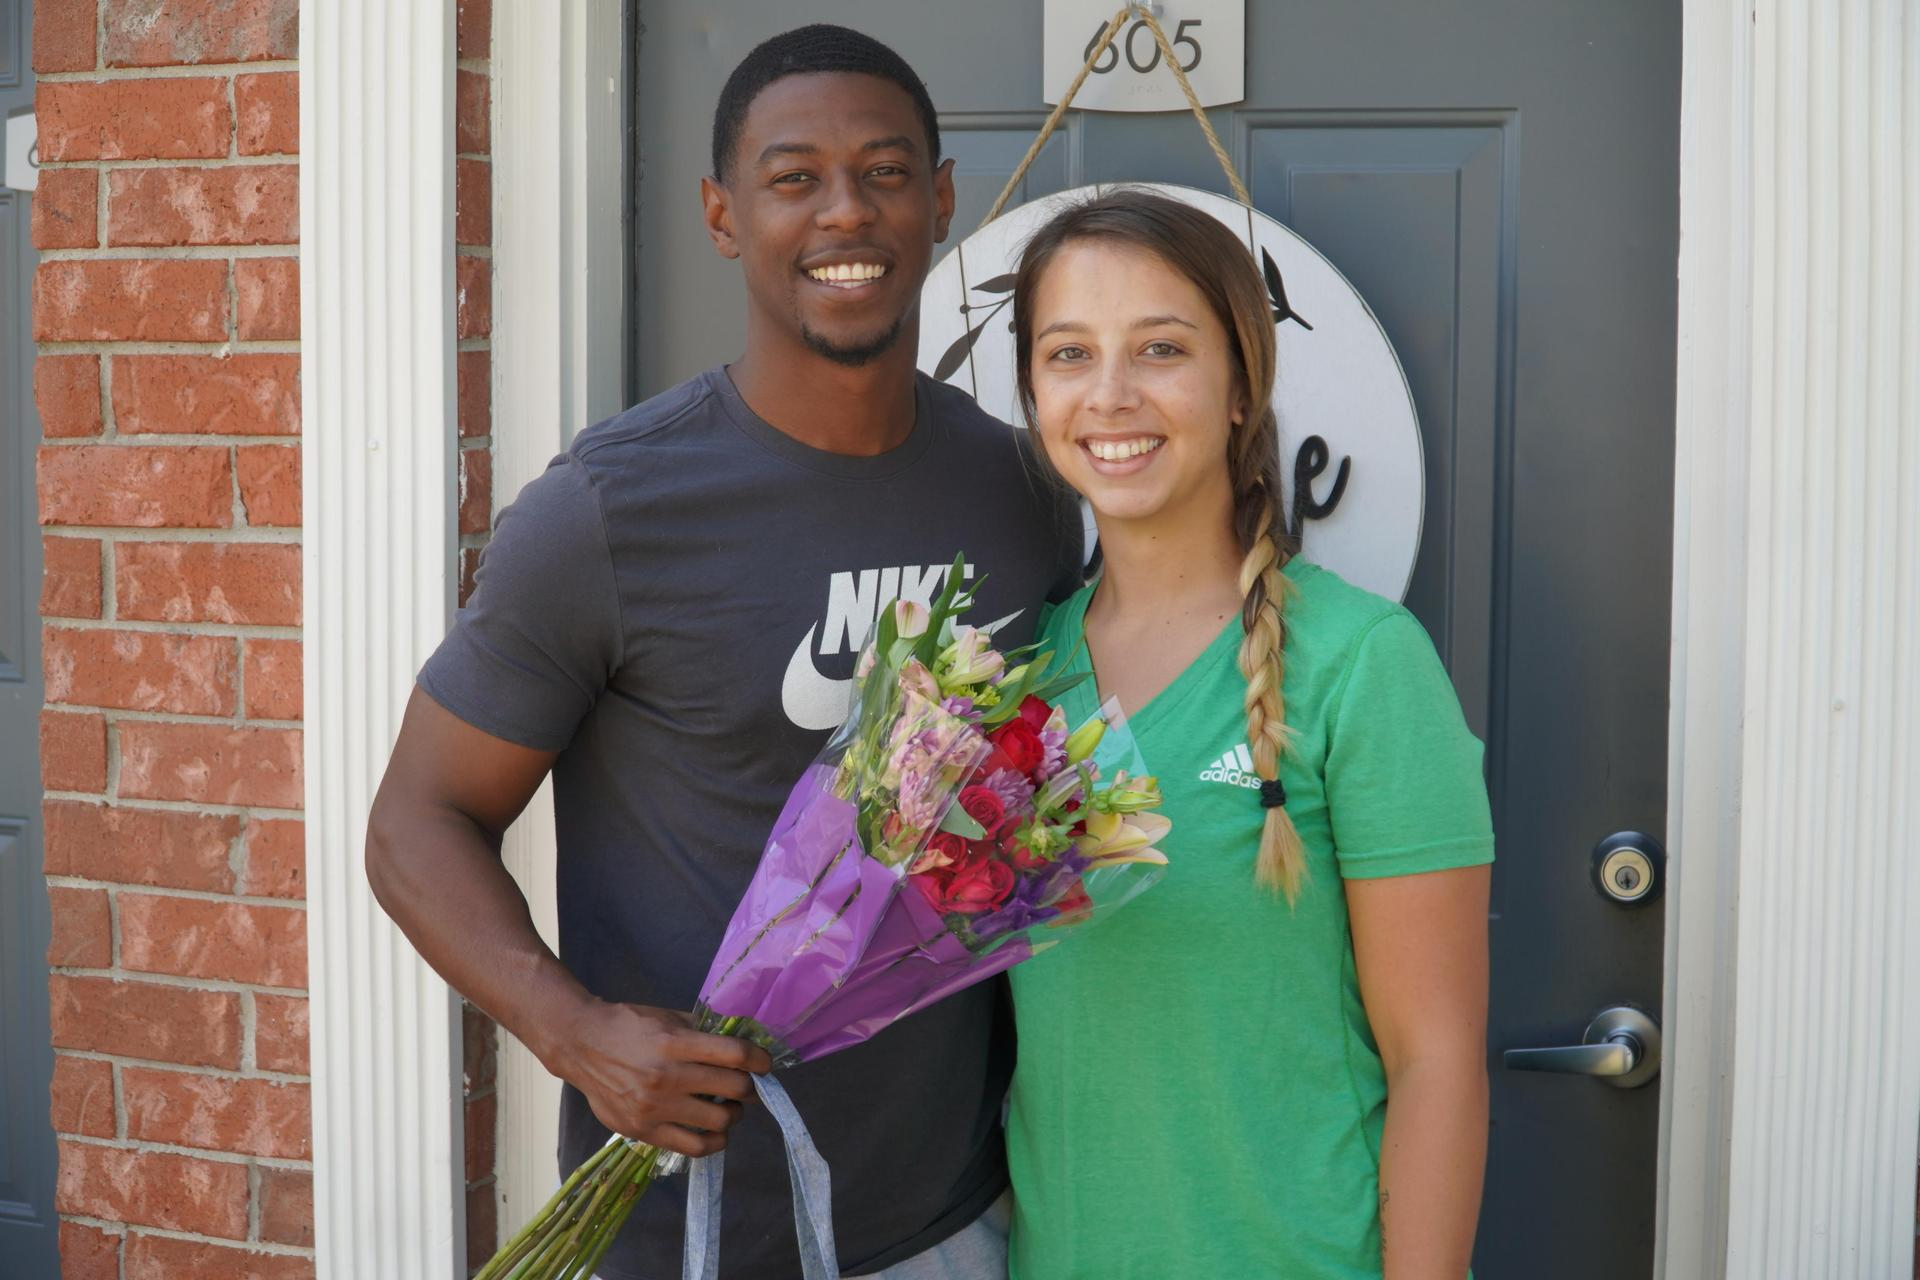 Kyle Brown and his fiancee